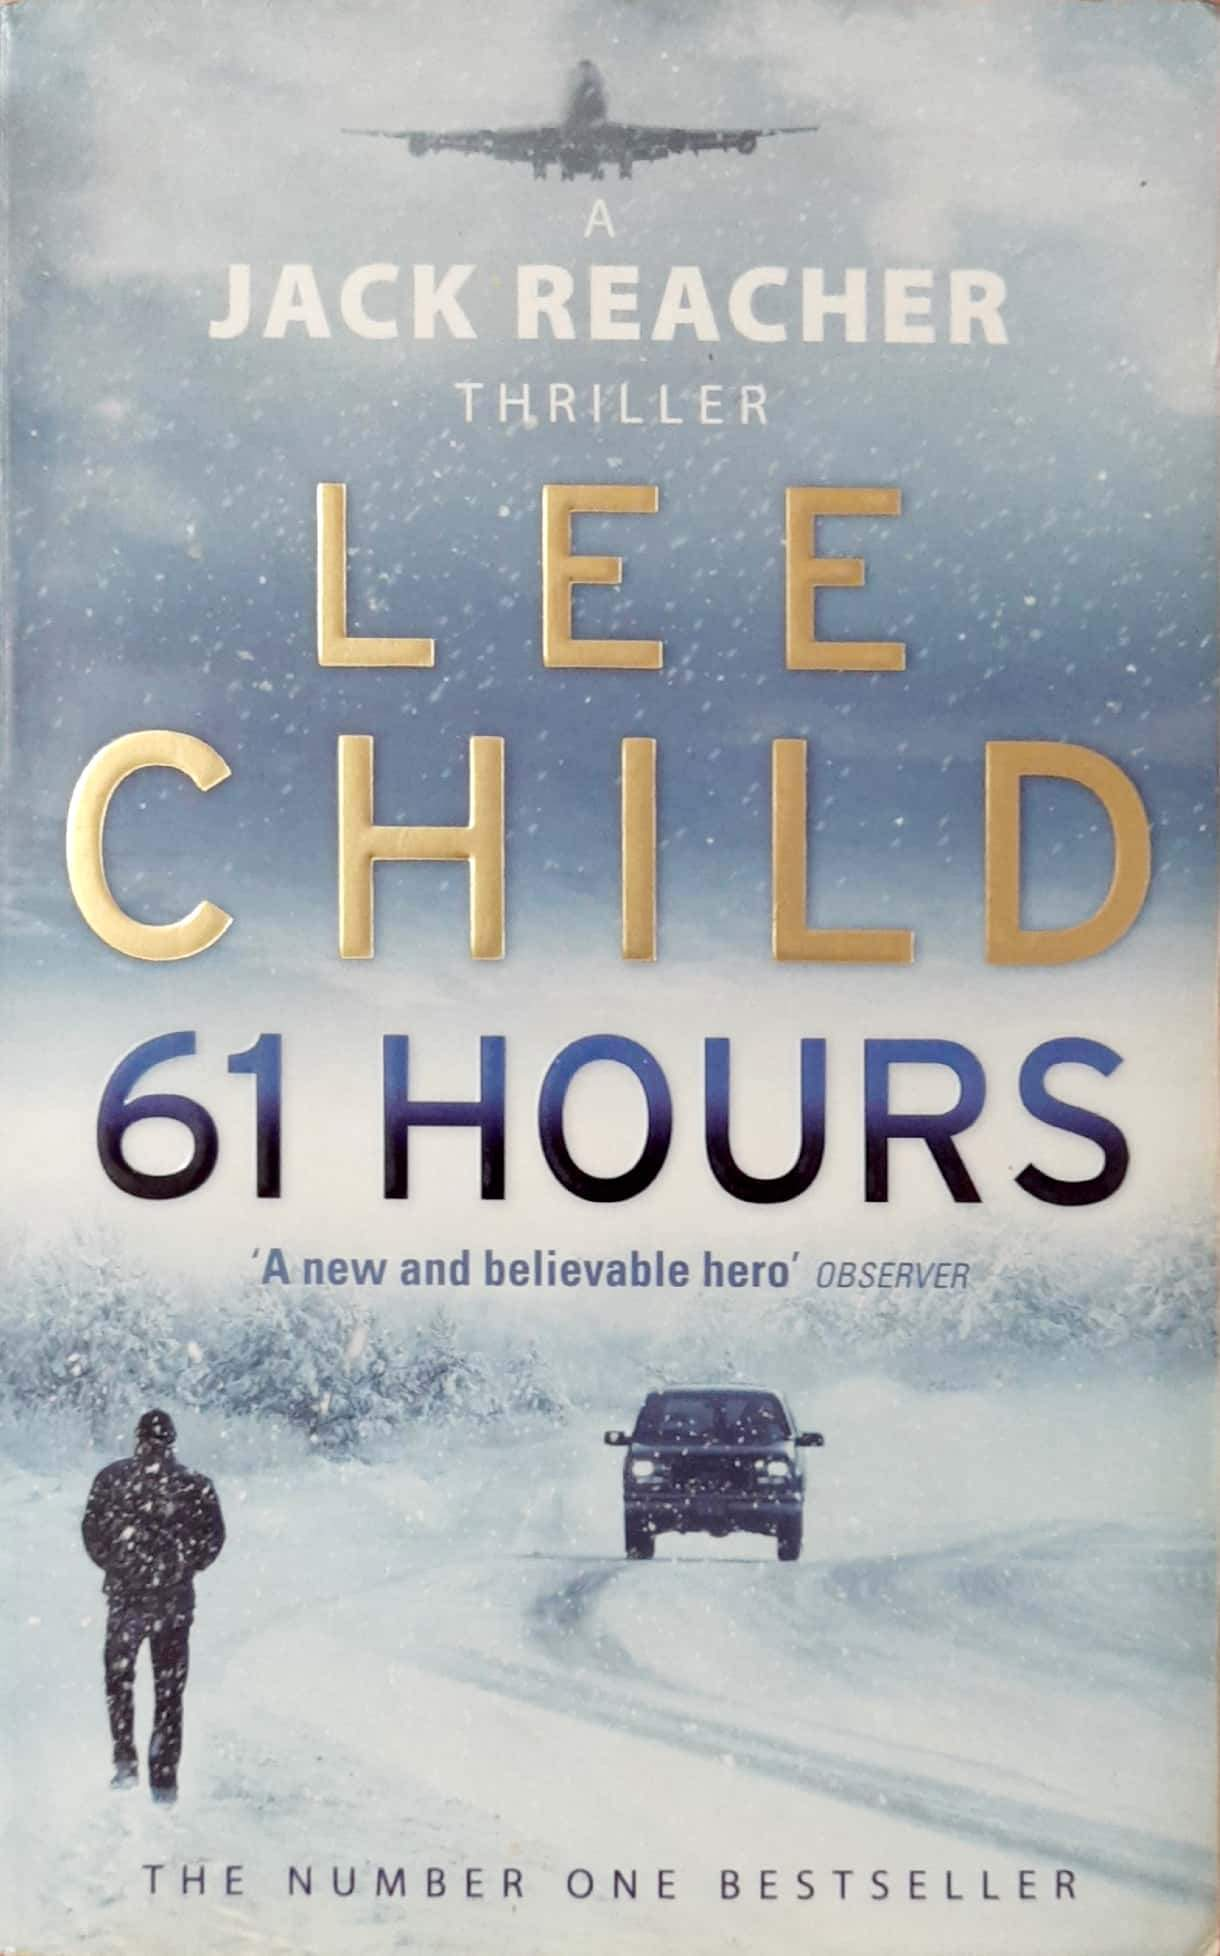 Buy 61 Hours (Jack Reacher #14) book online at low prices in India | Books Bookish Santa